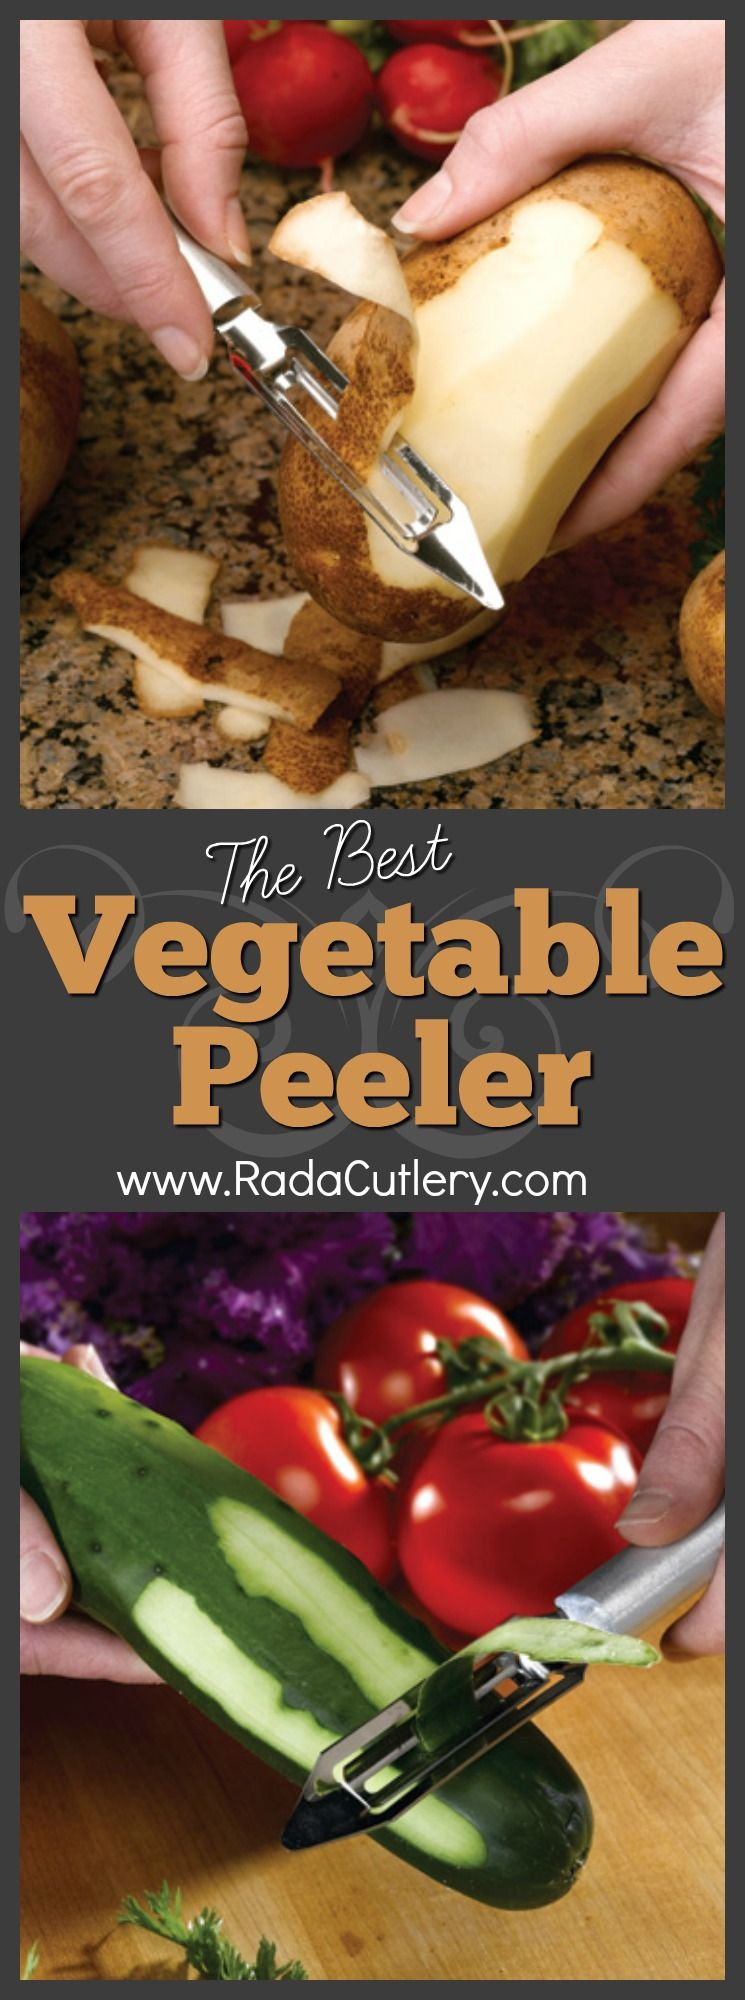 The Rada Cutlery Vegetable Peeler Is One Of Our Most Popular And Celebrated  Products, And